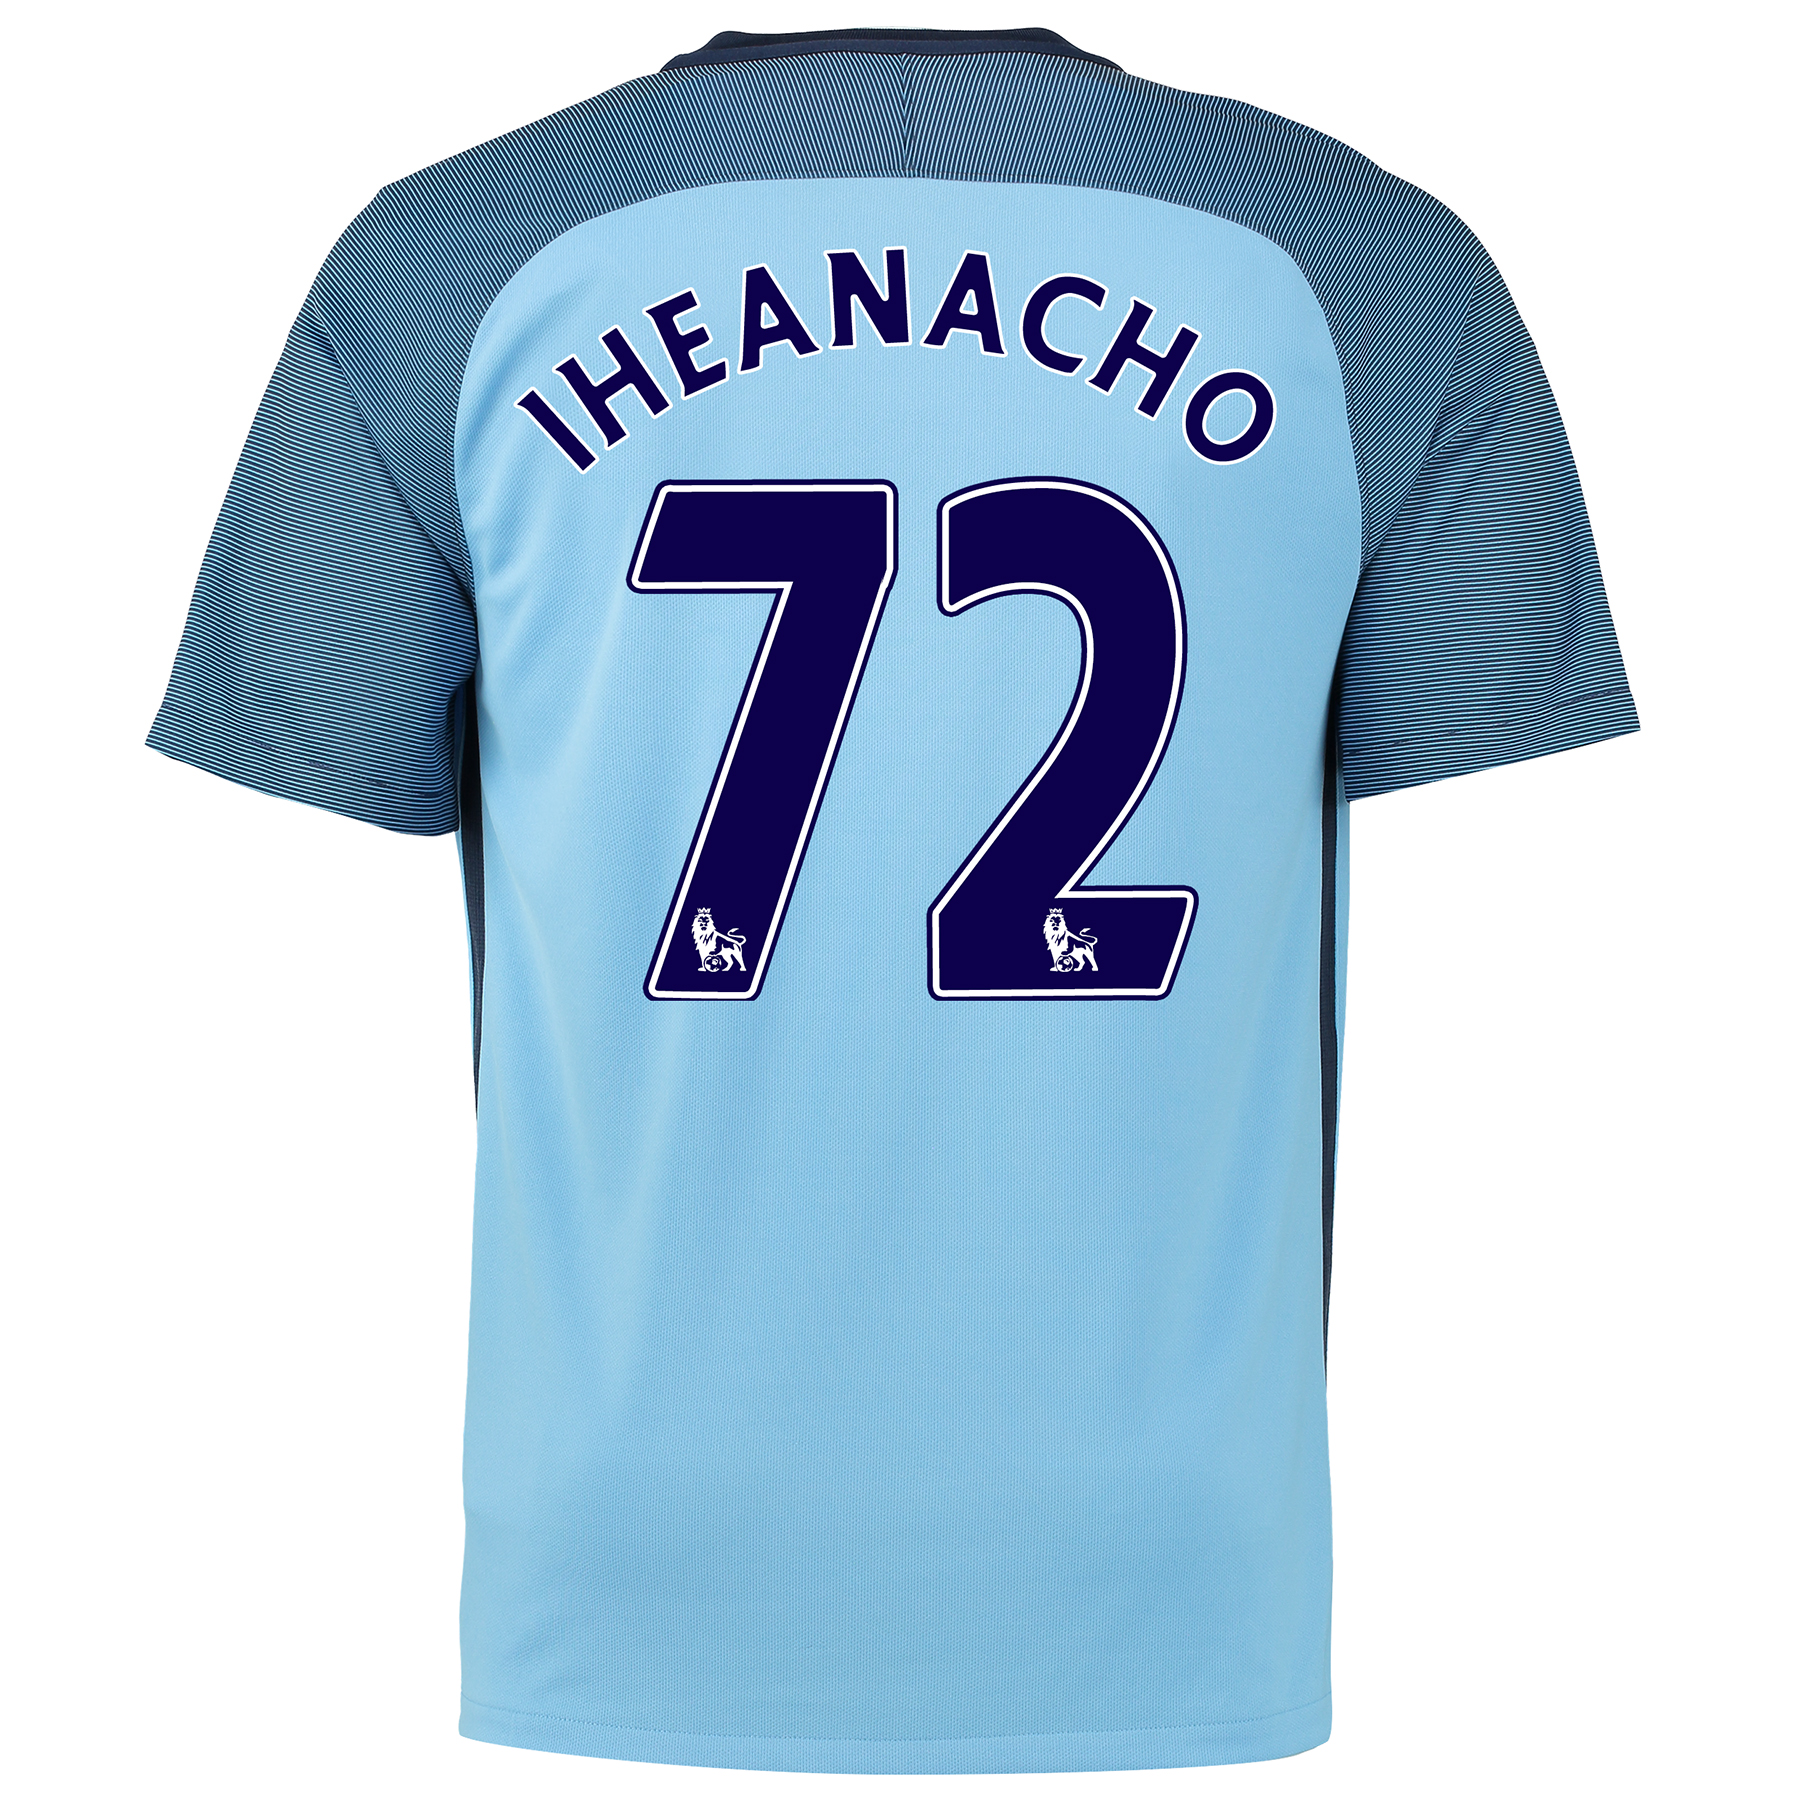 Manchester City Home Shirt 2016-17 with Iheanacho 72 printing